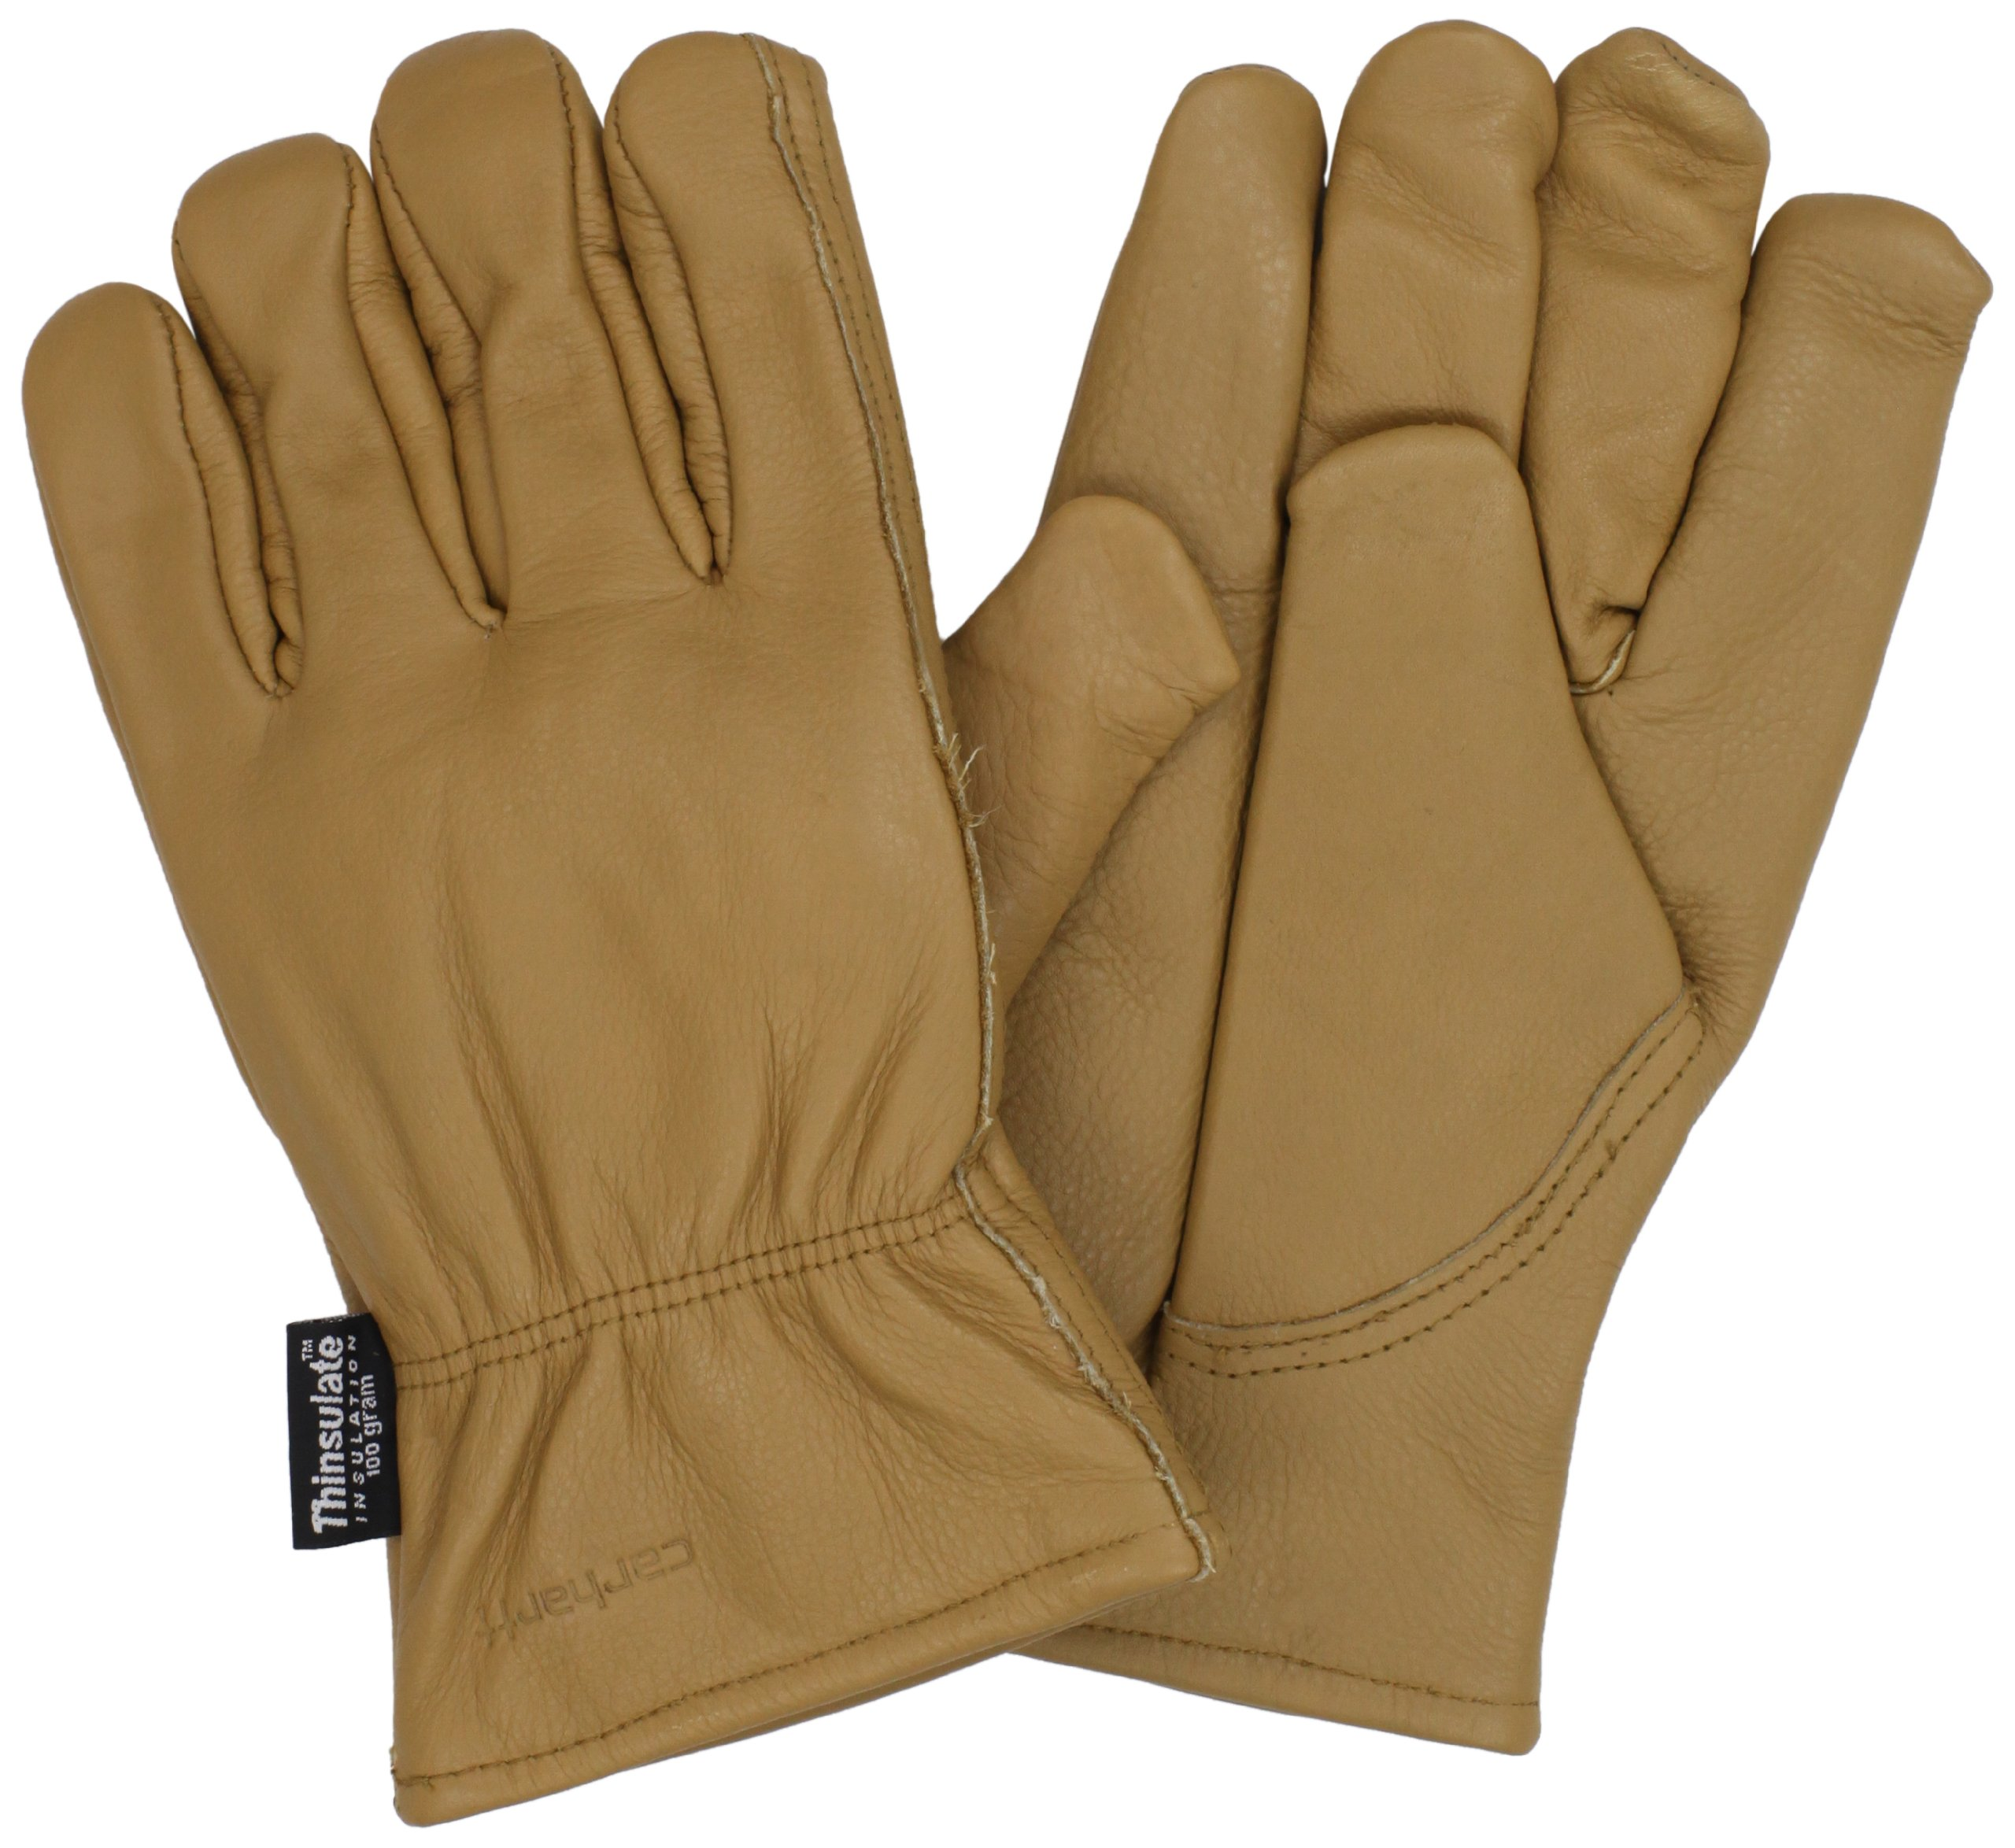 Carhartt Men's Insulated System 5 Driver Work Glove, Brown, Small